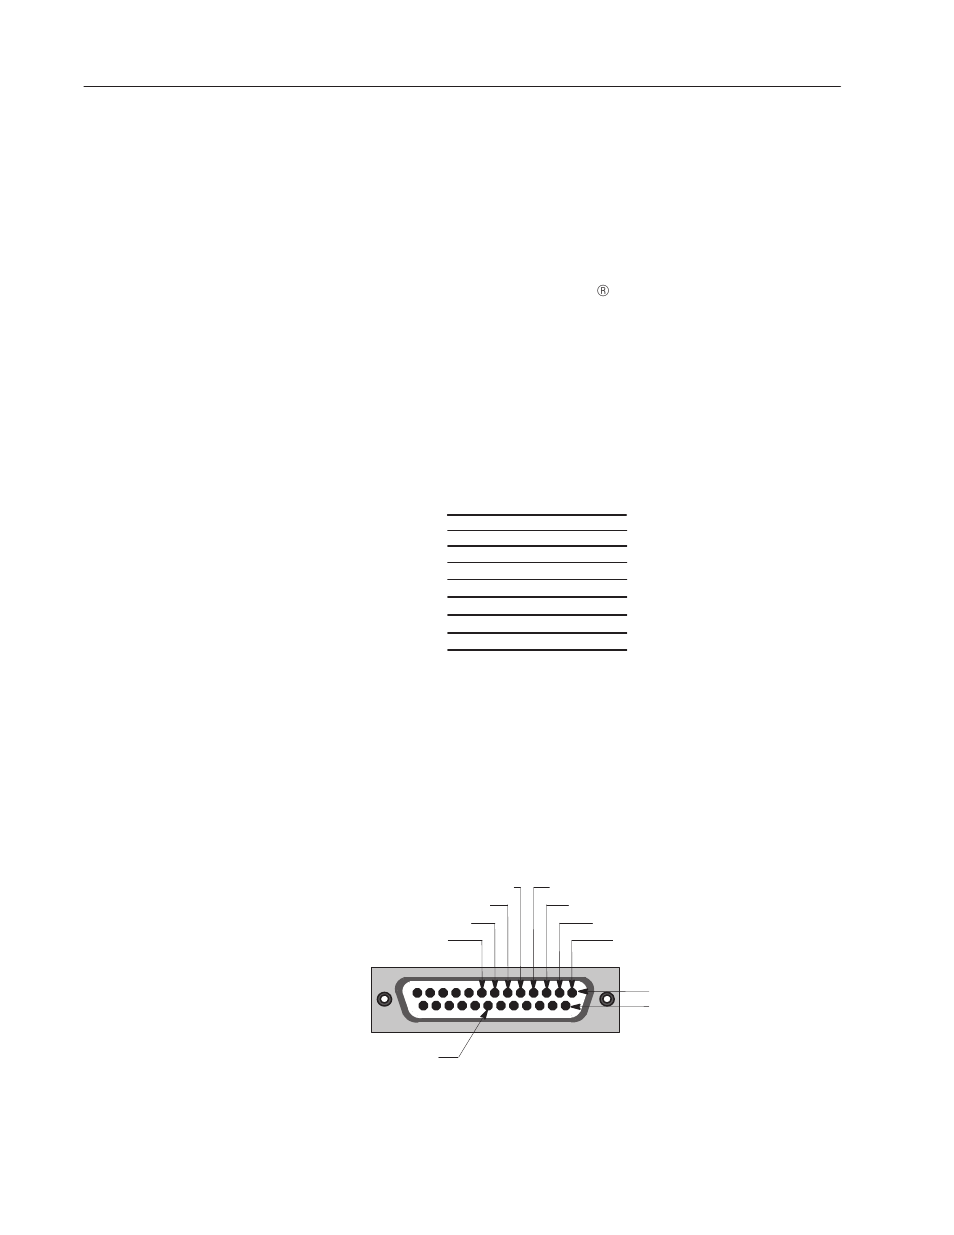 Printer Serial Port Pinout Cable Schematic Connecting The Upload Download 954x1235